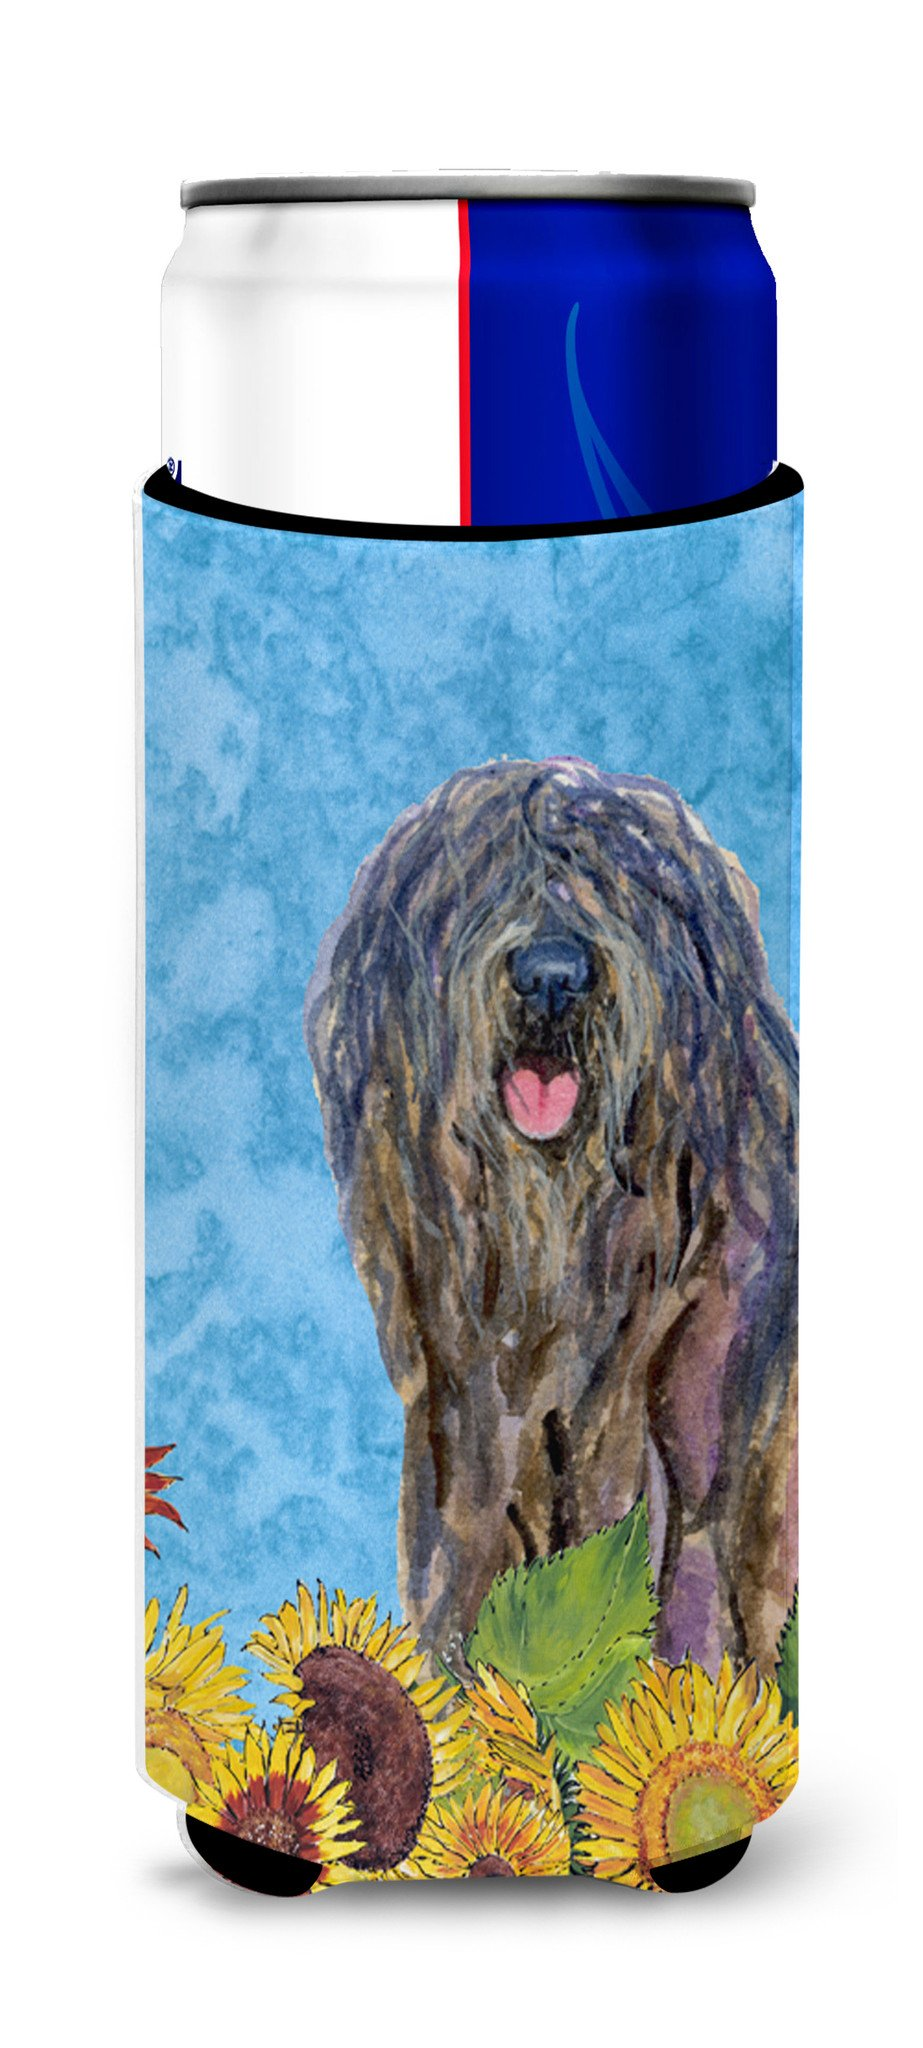 Bergamasco Sheepdog in Summer Flowers Ultra Beverage Insulators for slim cans SS4157MUK by Caroline's Treasures